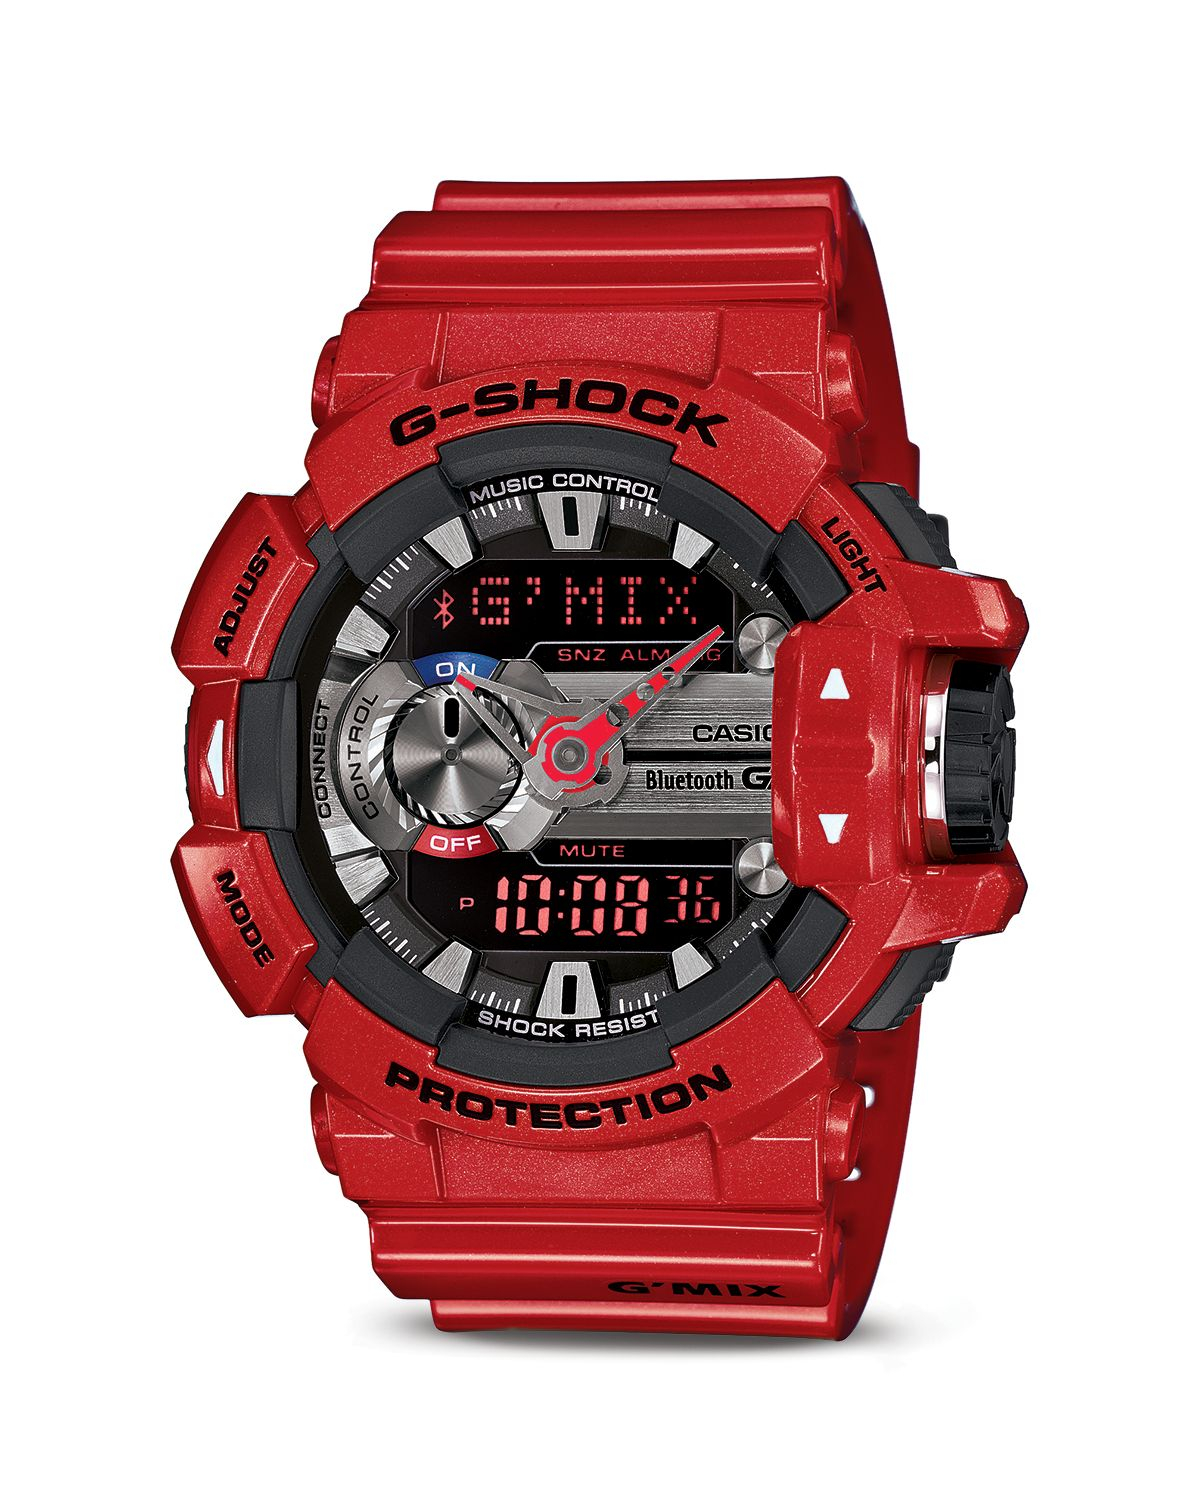 G-shock G'Mix Bluetooth Watch, 55Mm In Red For Men